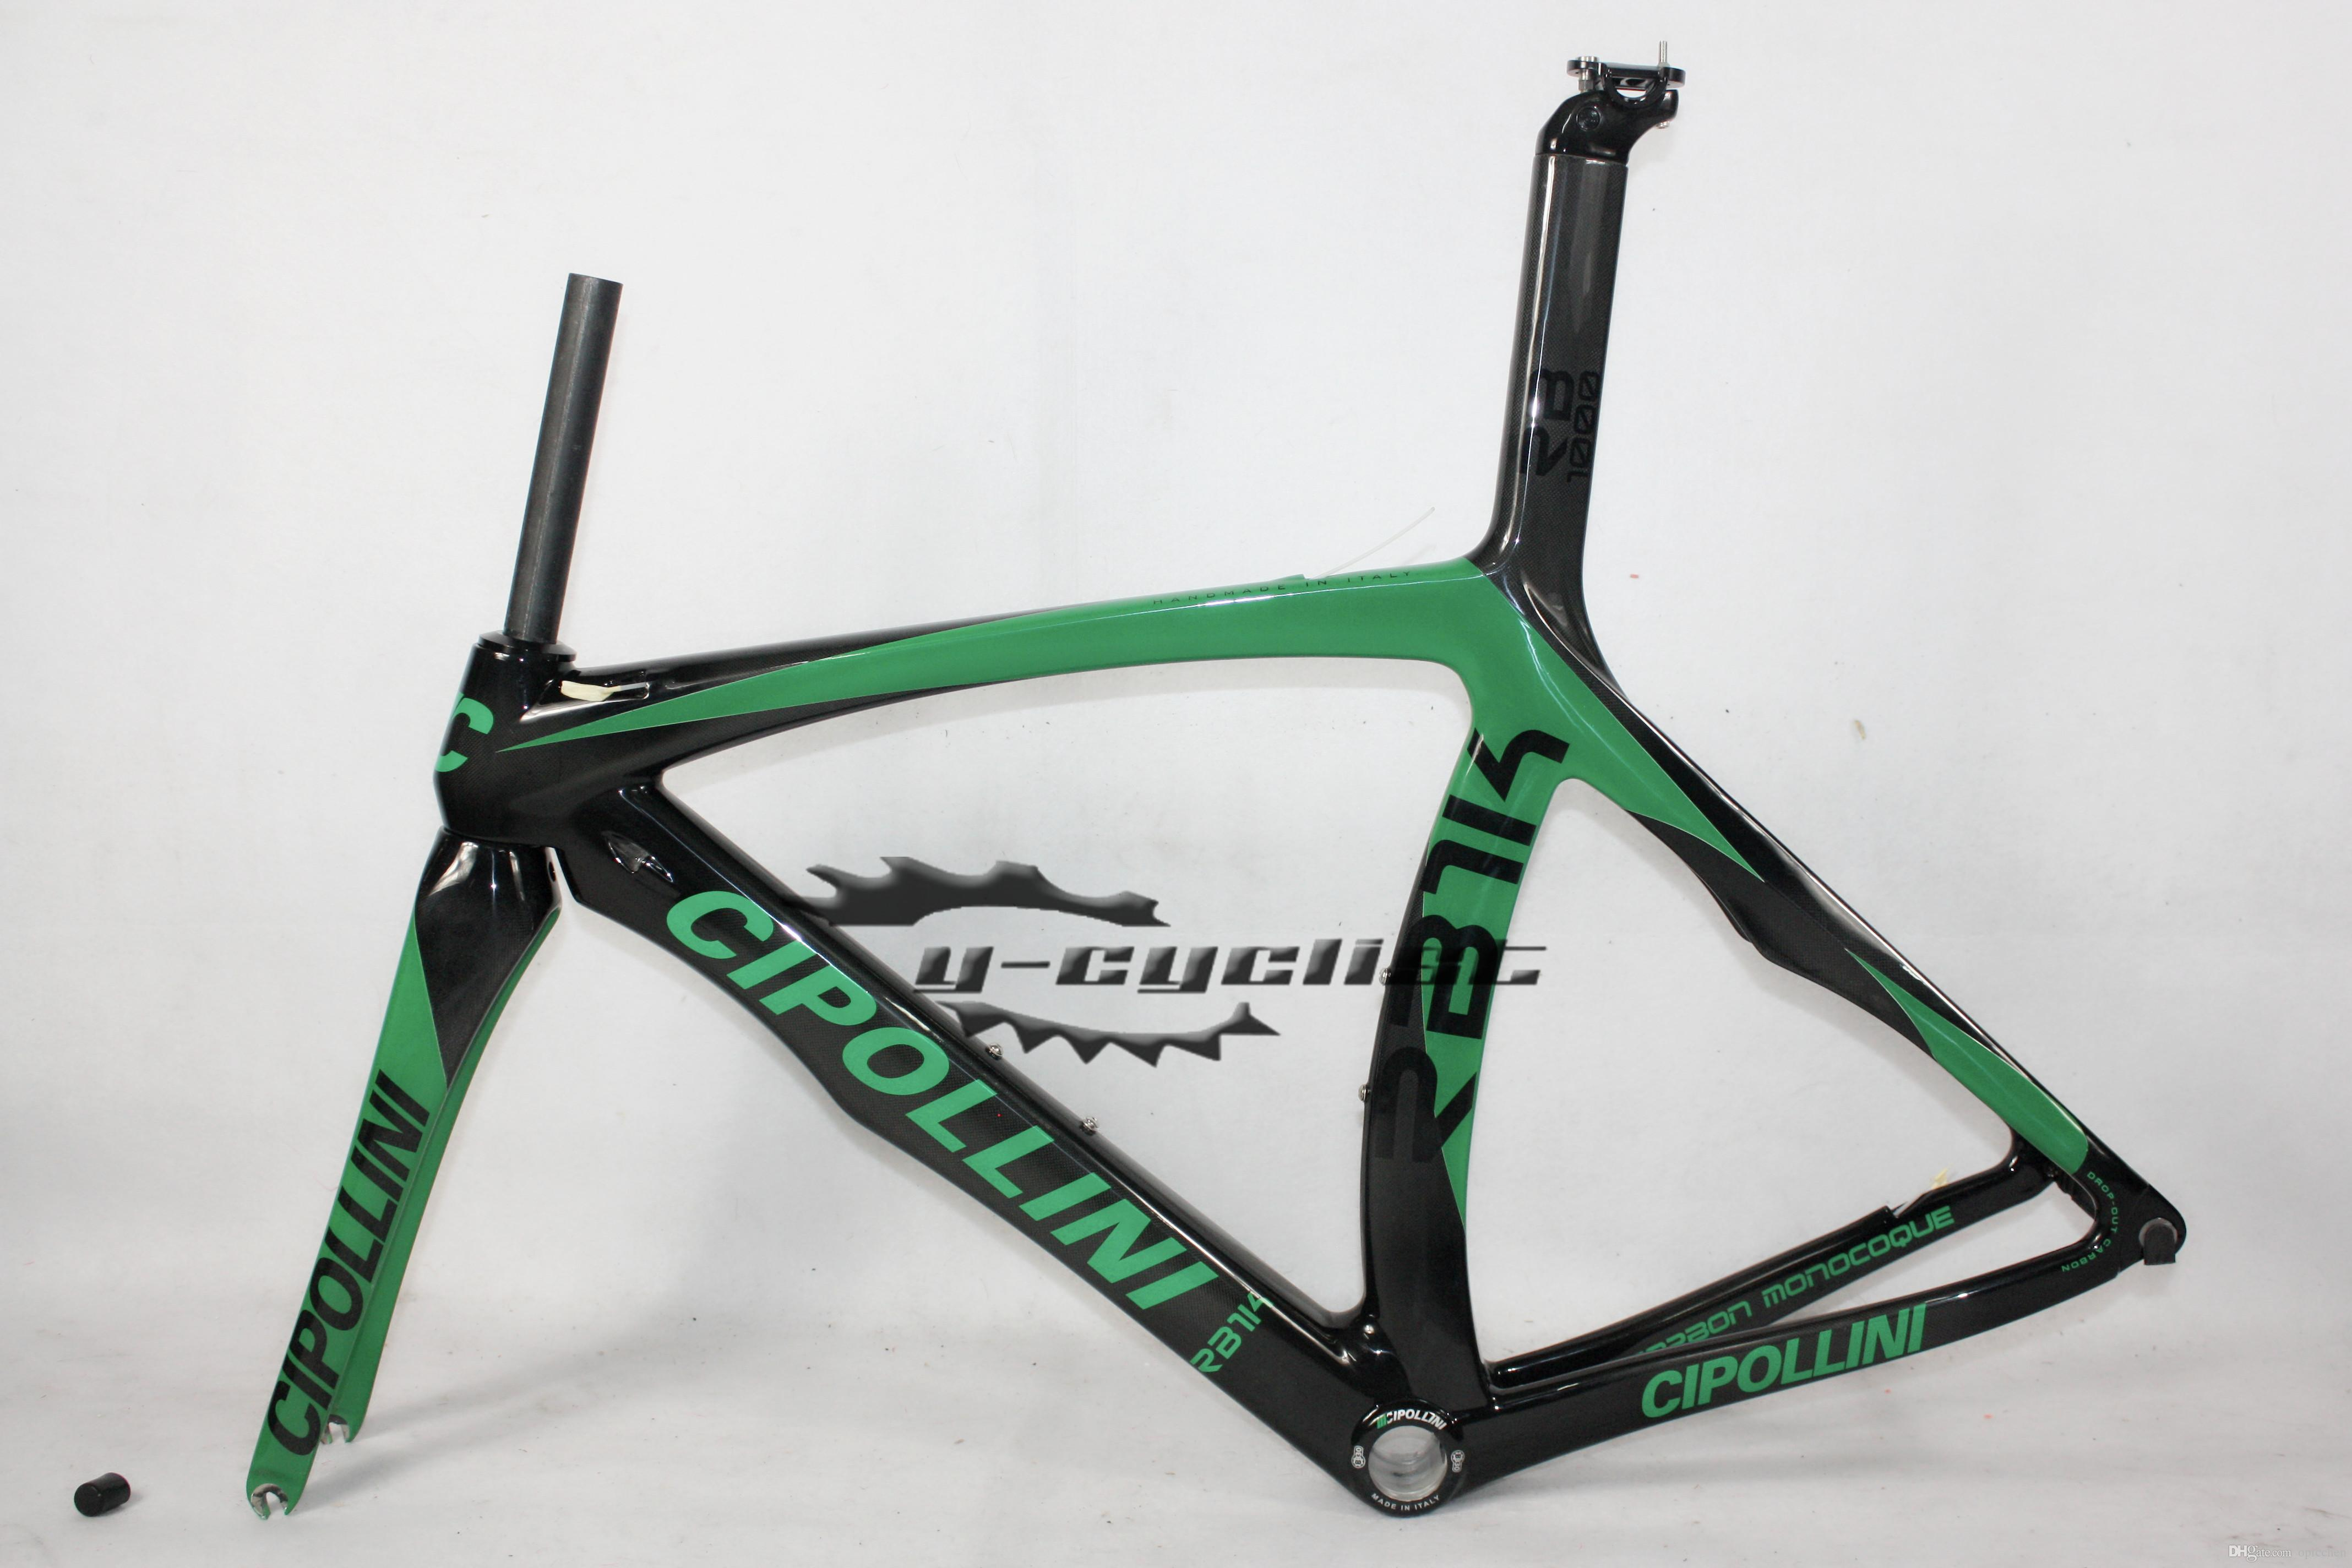 Cheap CIPOLLINI RB1K Carbon Bike Frame Full Carbon Fibre Road Cycling Bicycle Frame Black Green Glod Different Styles Glossy Matt Finish